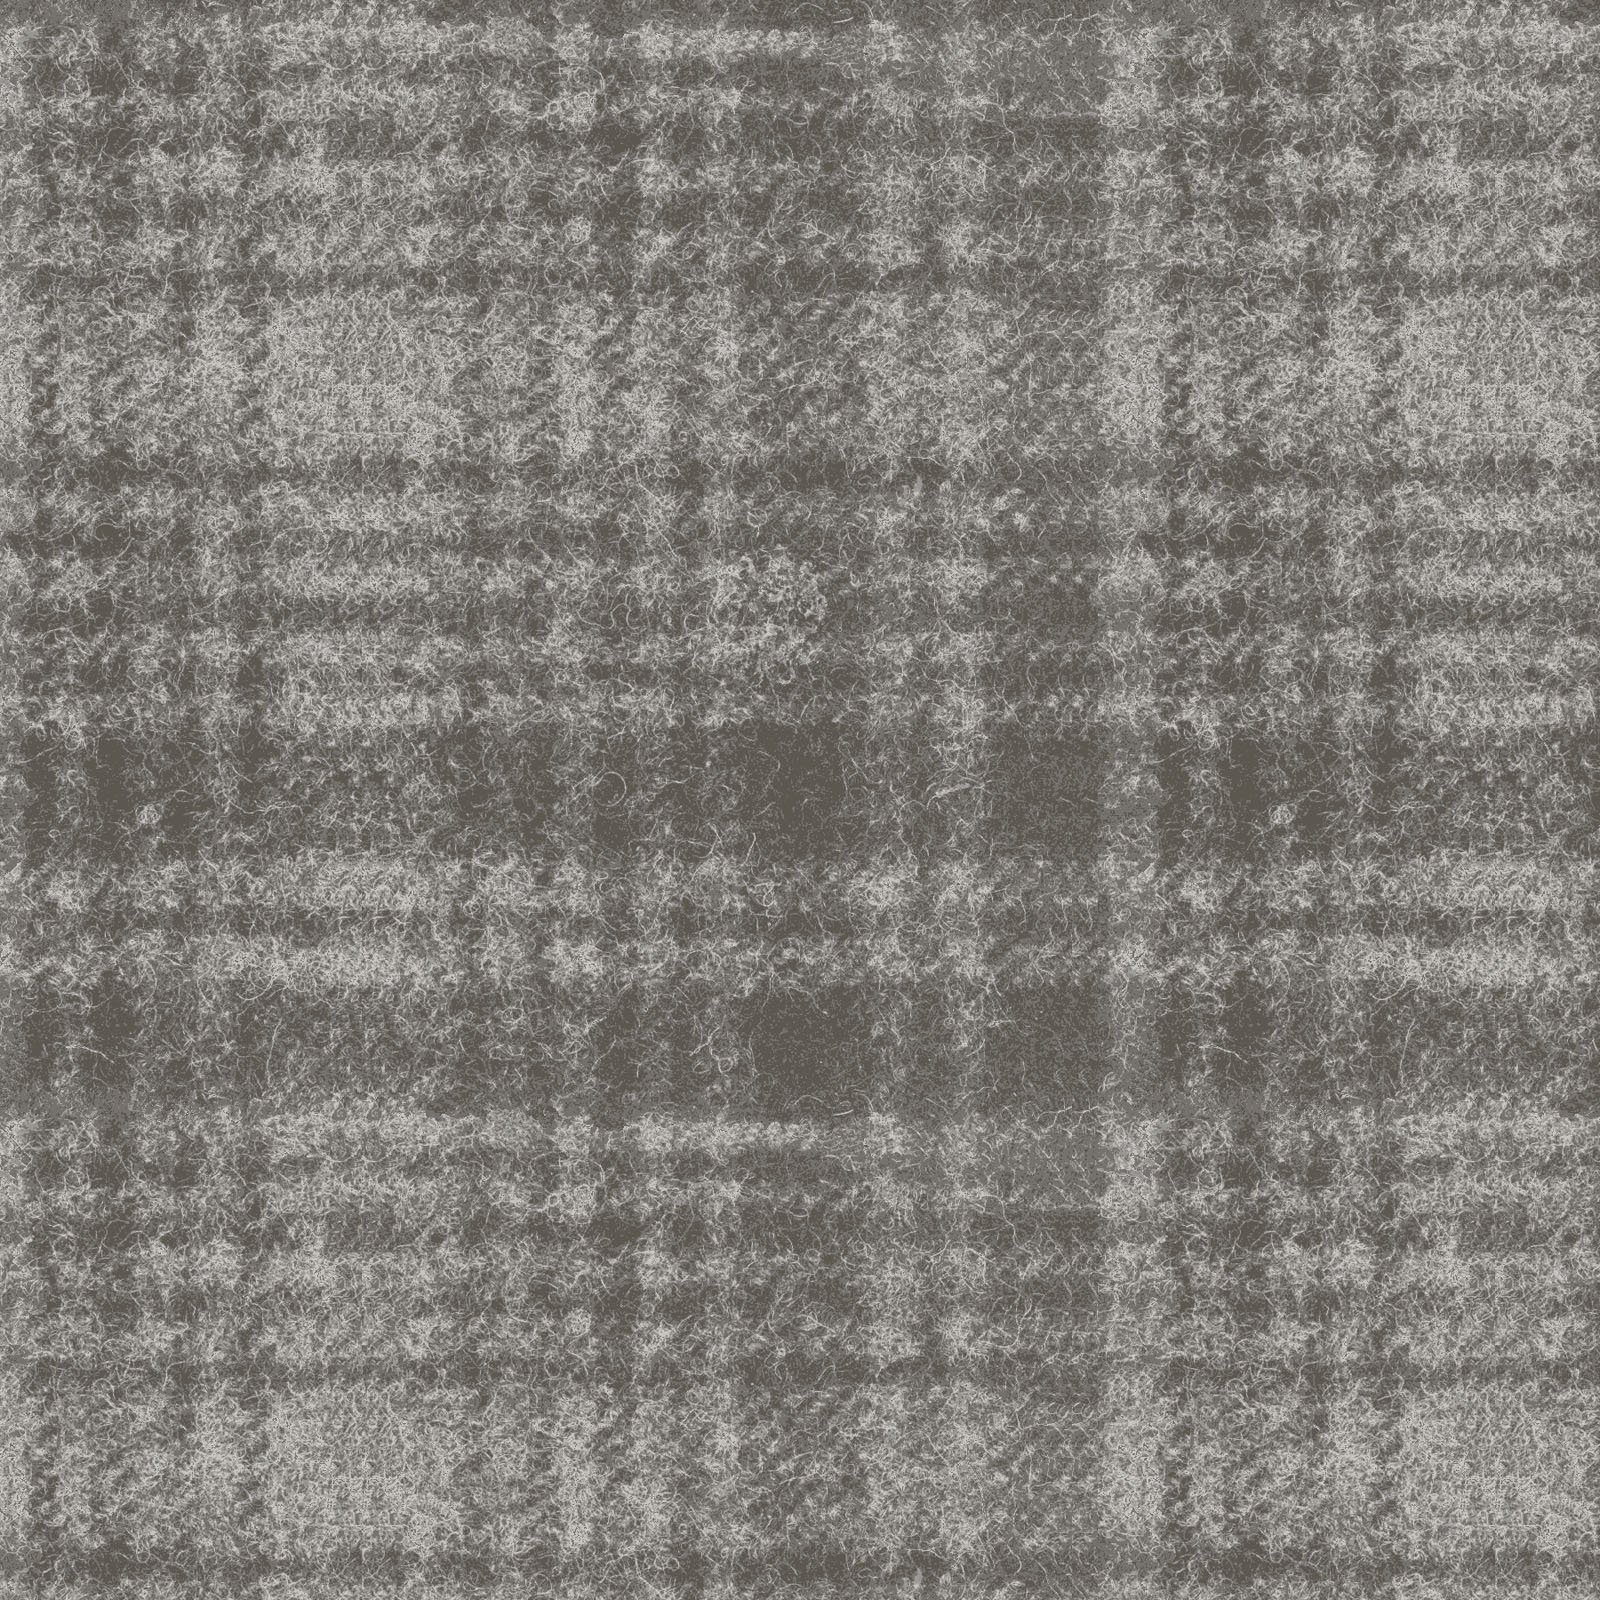 Woolies Flannel - Windowpane - Grey - 1/2 Yd Cuts